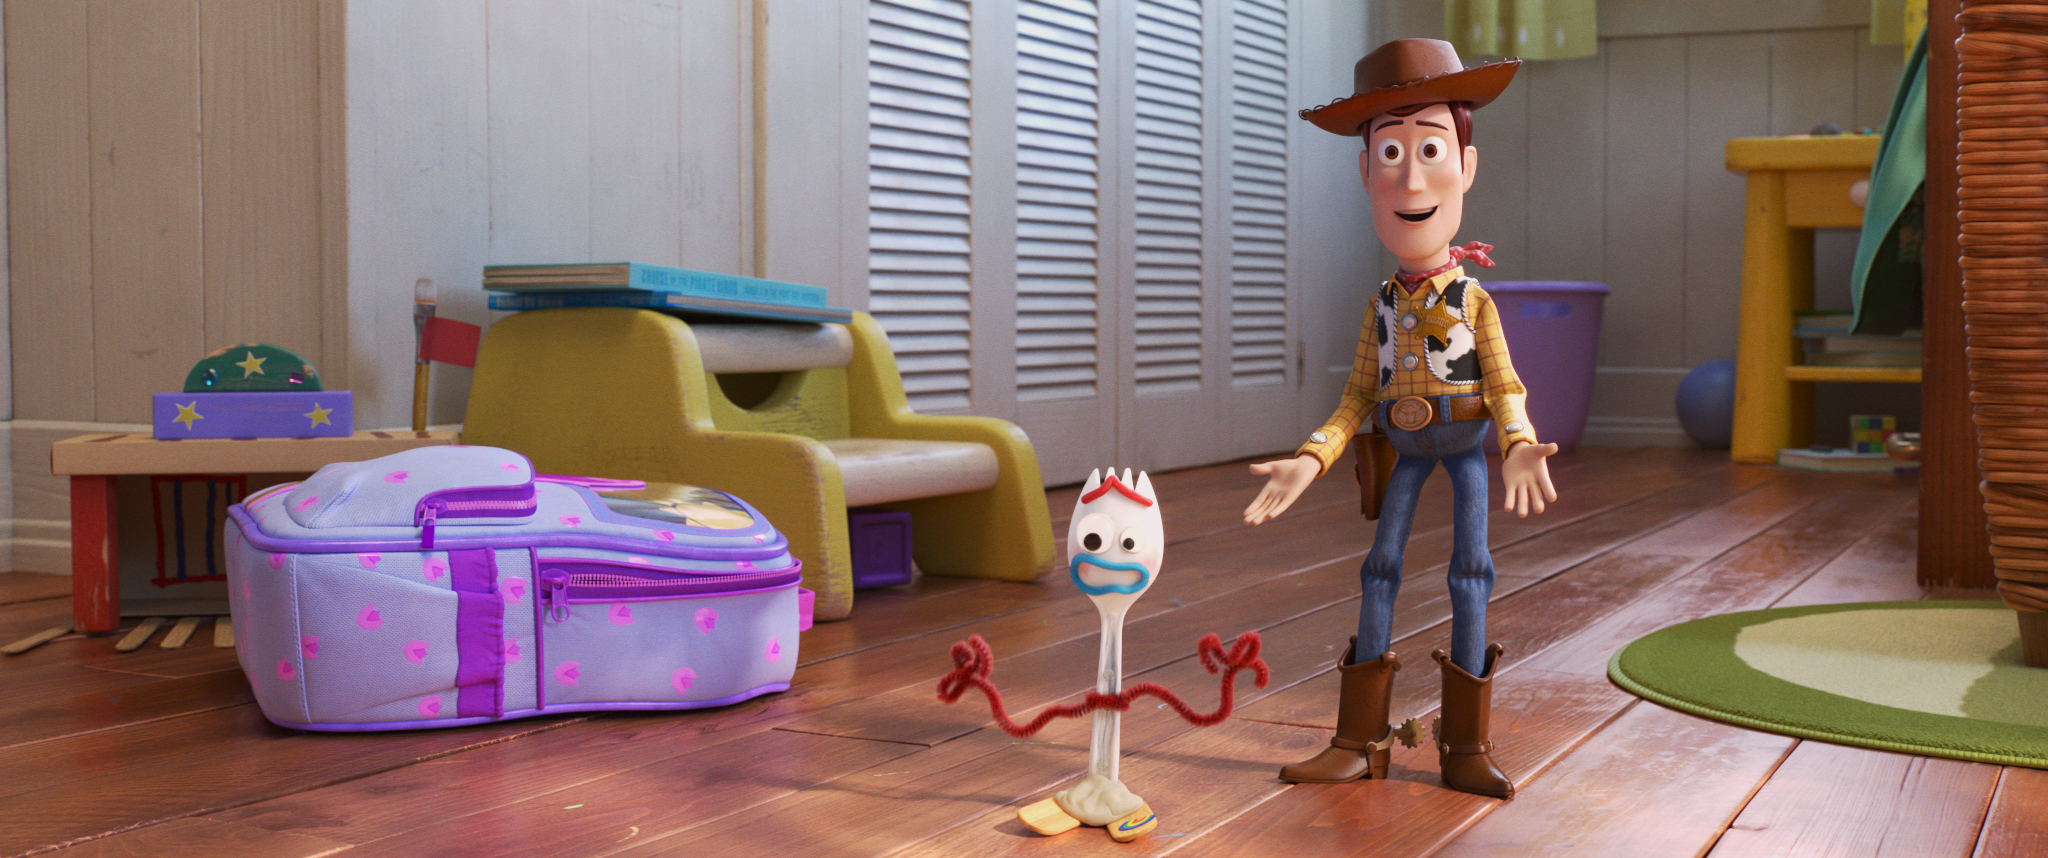 To Infinity And ... Be Done: After 4 Films, Have We Finally Outgrown 'Toy Story'?